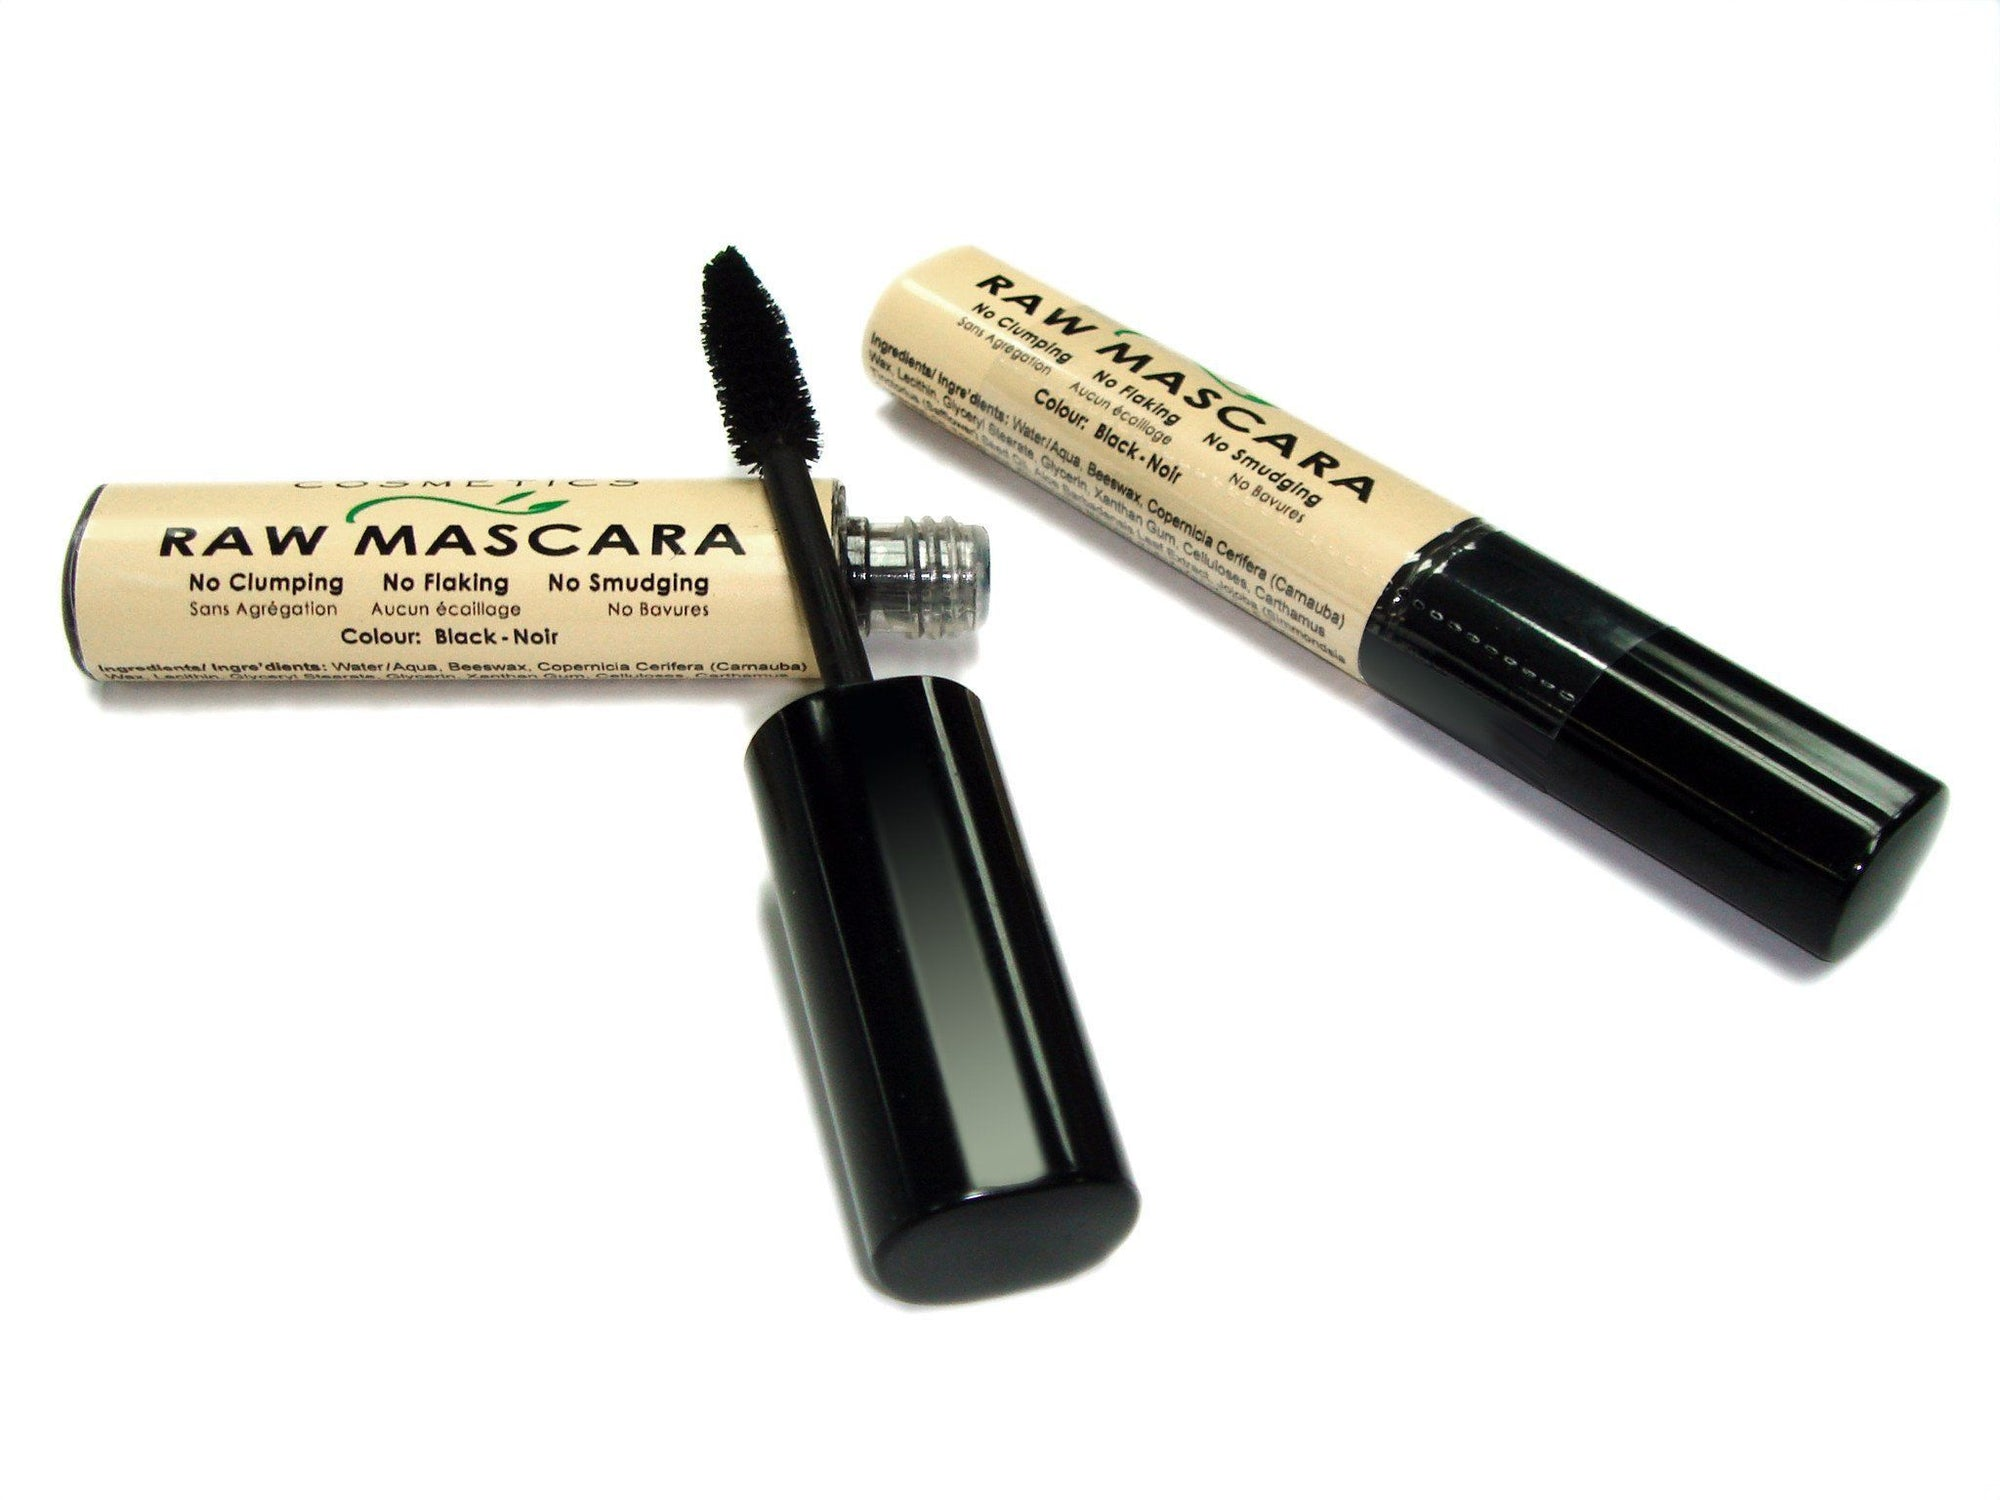 Beauty & Skin Care - Earthlab - Raw Mascara, 10g